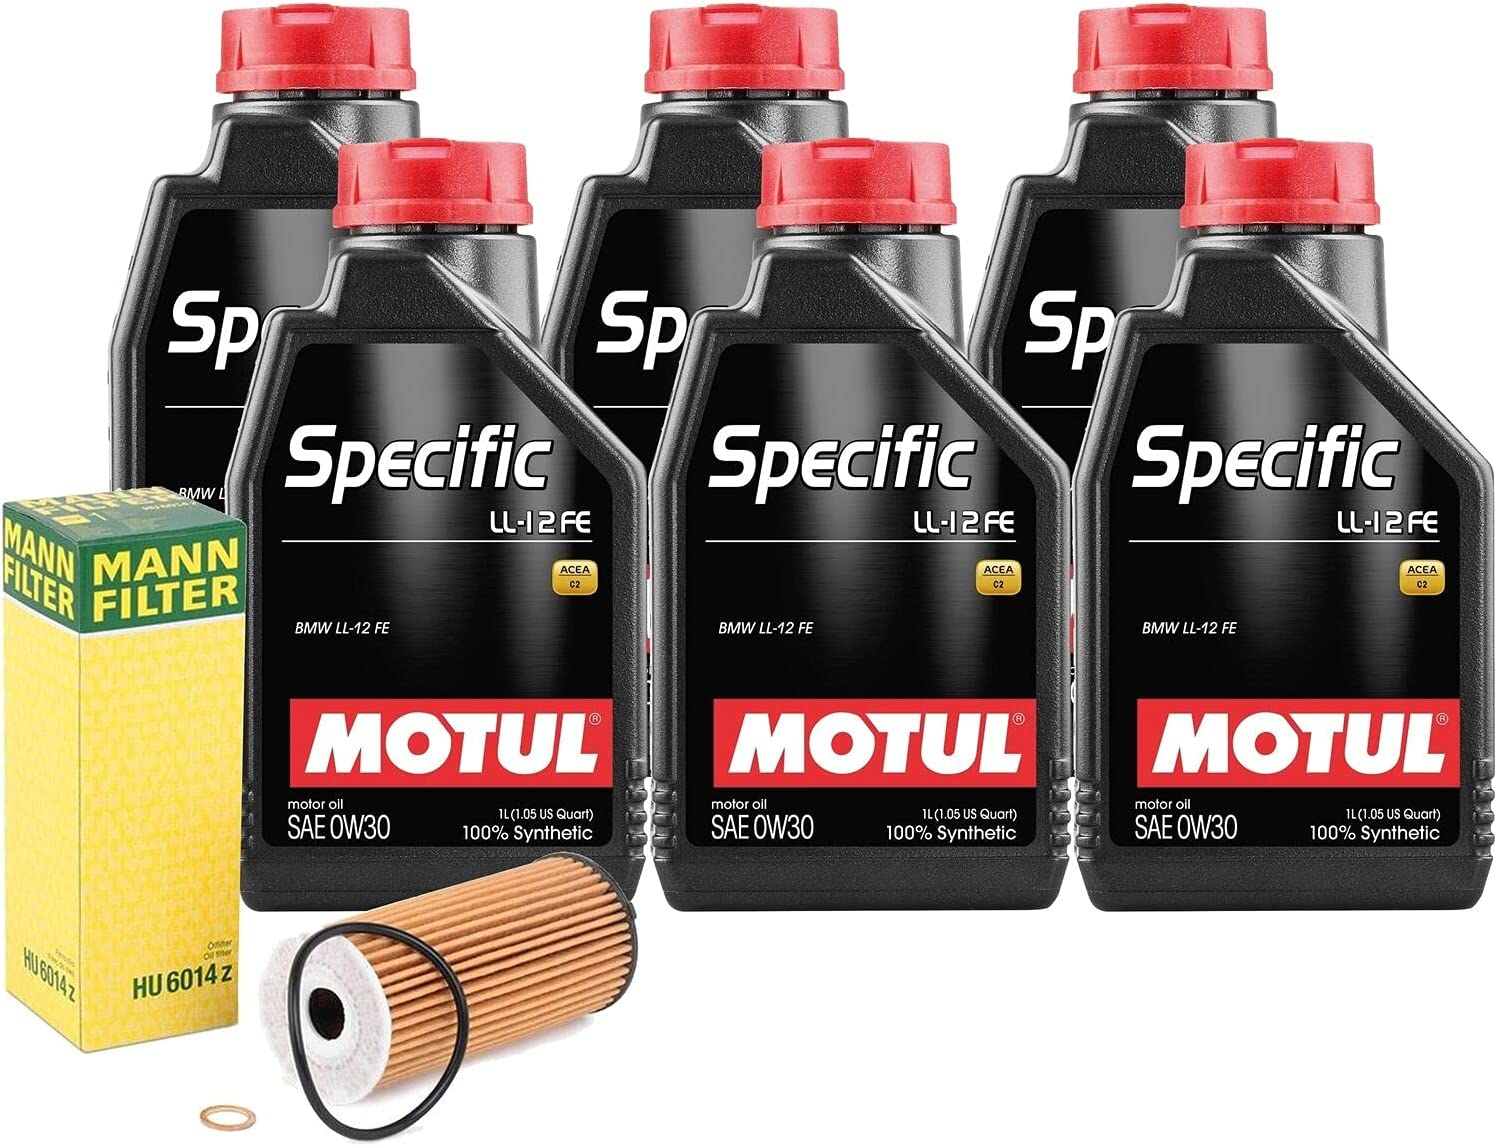 6L SPECIFIC LL12FE 0W30 Filter Las Vegas Mall Motor Max 77% OFF w Compatible kit Change Oil